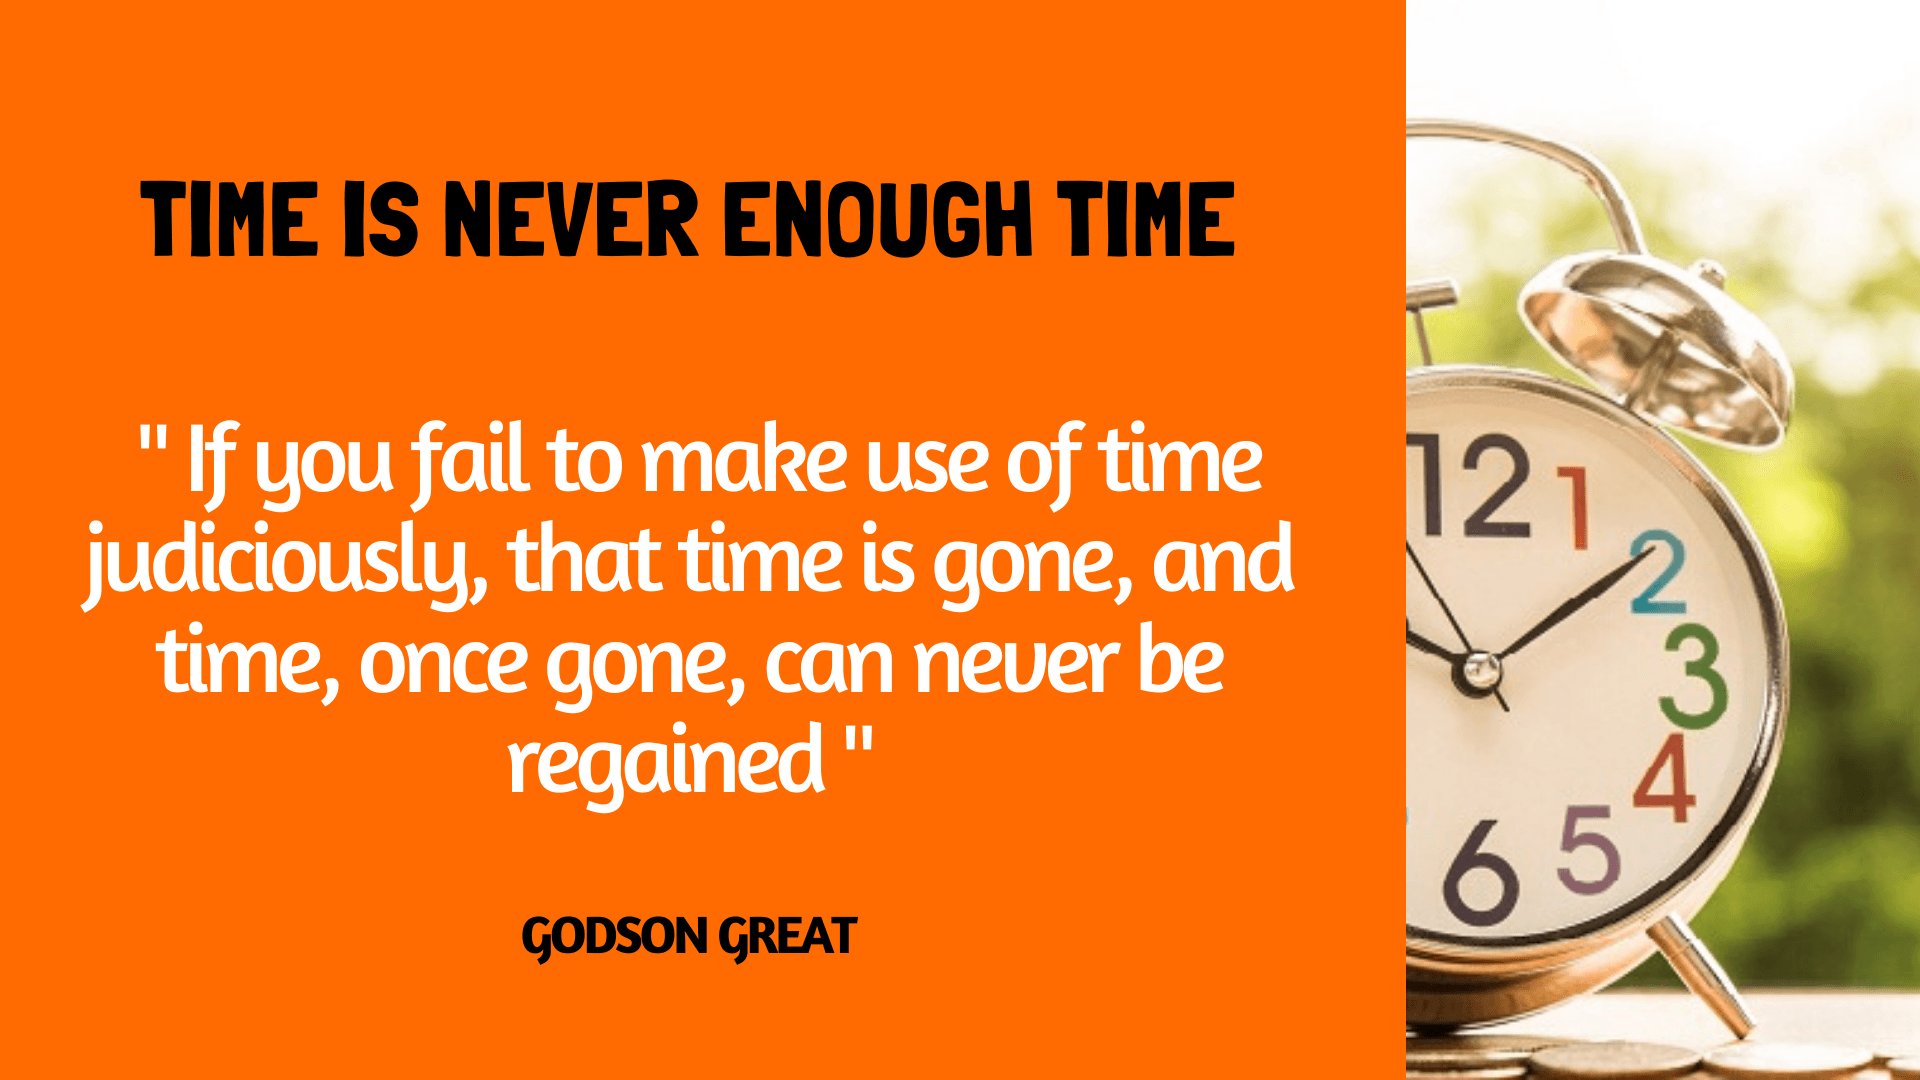 Time is Never Enough Time